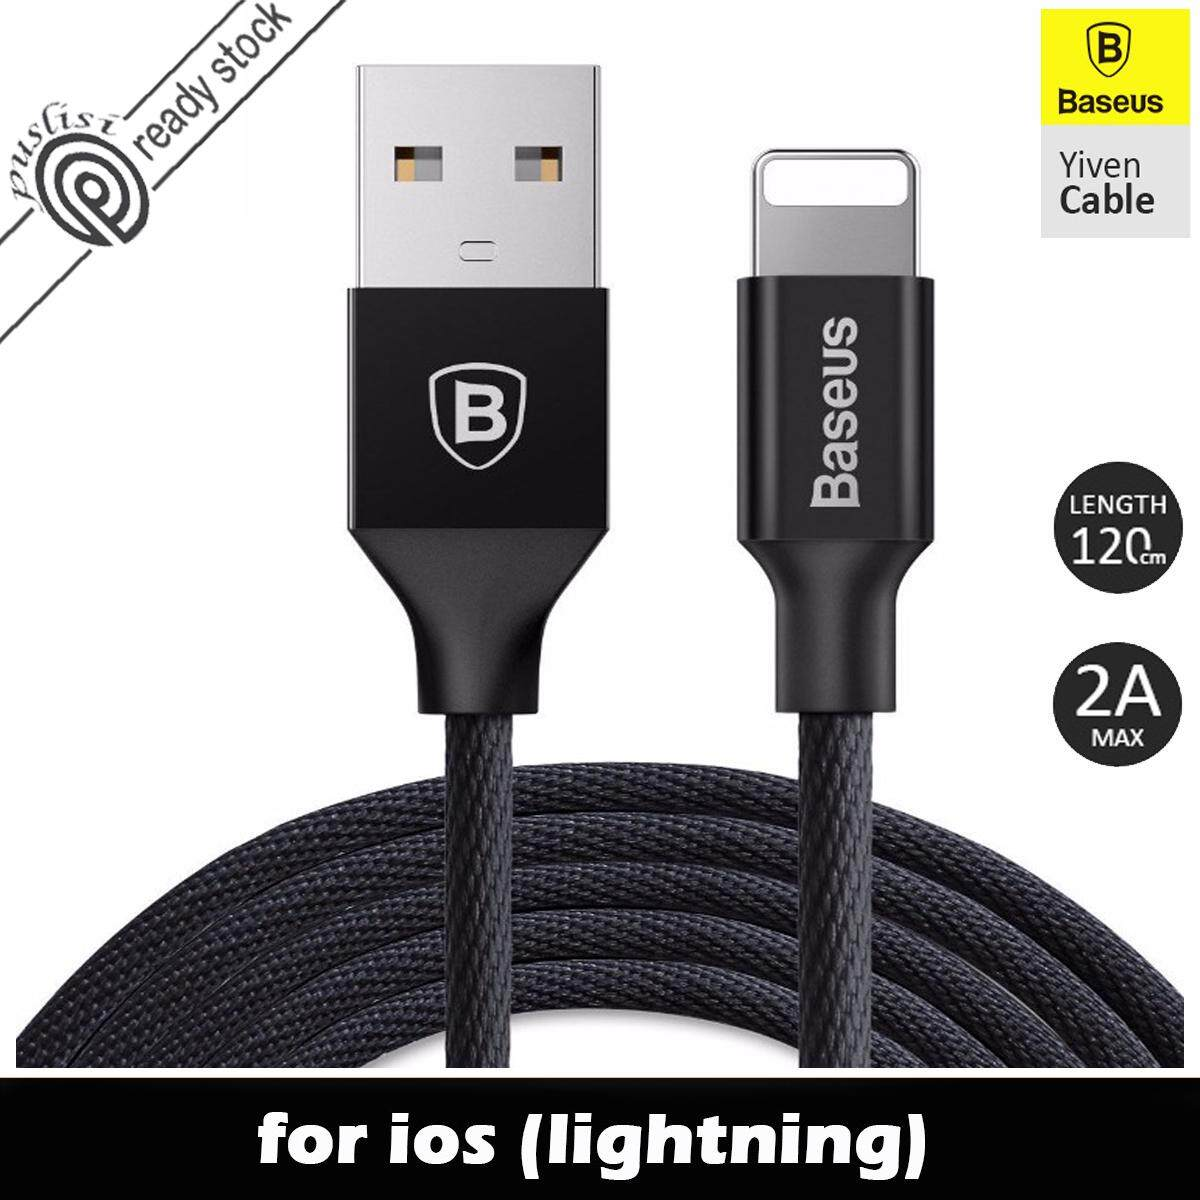 Cables For The Best Prices In Malaysia Kabel Data Samsung Galaxy Tab 1 2 Original 100 Iphone Baseus Fast Charging Yiven Lightning Cable